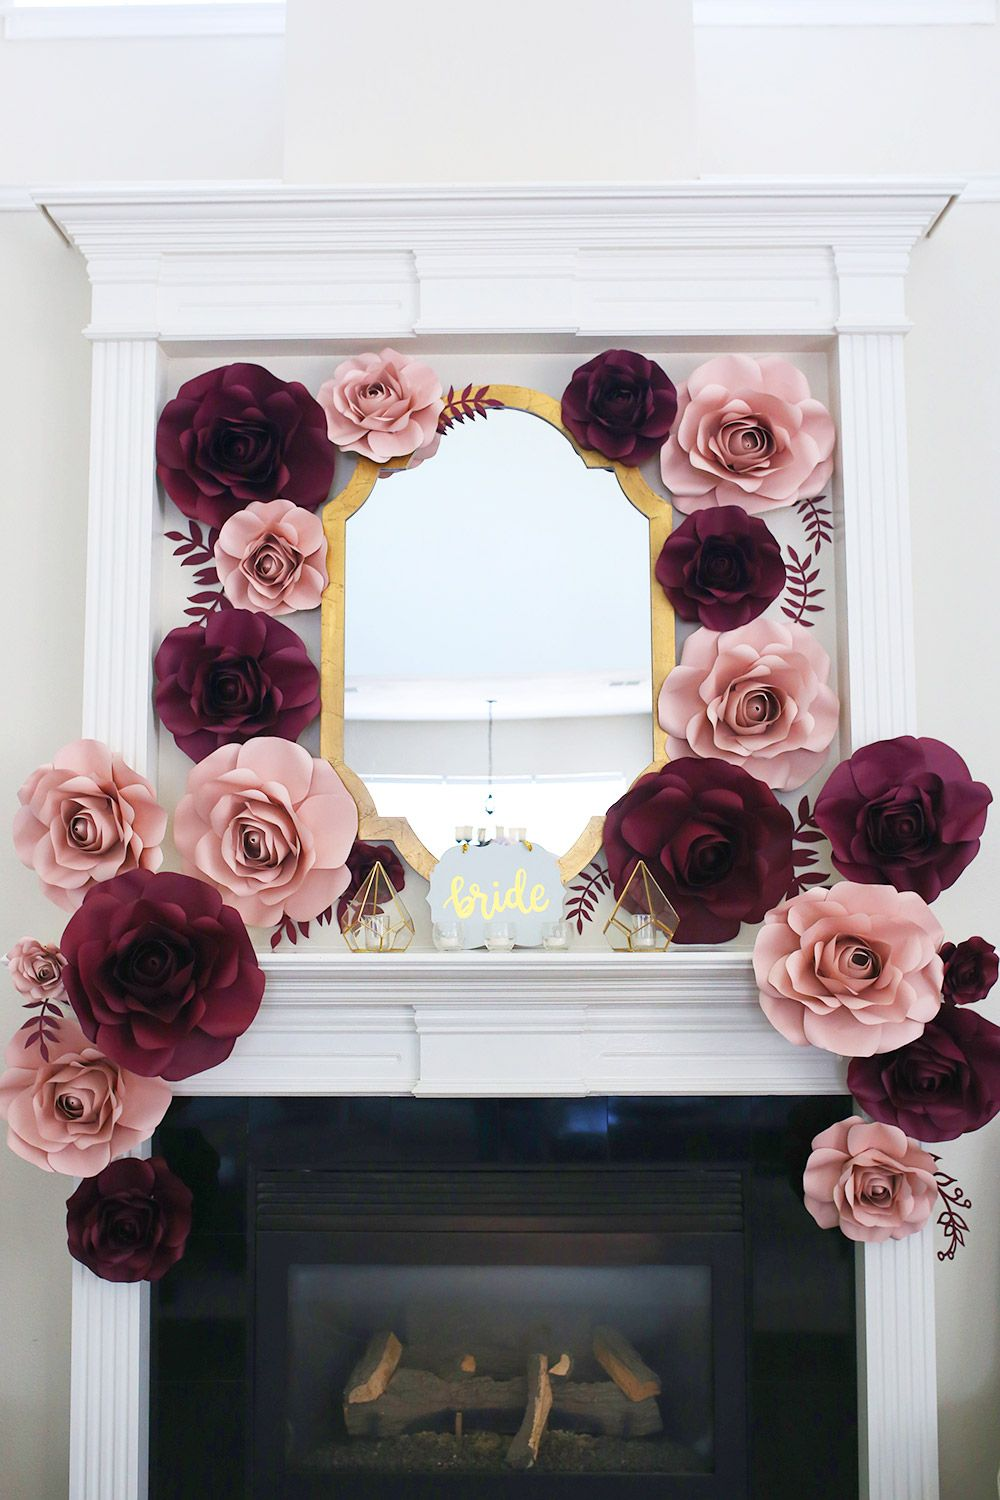 12 Places To Use A Paper Flower Backdrop By Cameron Proffitt Simple Bridal Shower Decorations Bridal Shower Decorations Elegant Wedding Bridal Bouquets